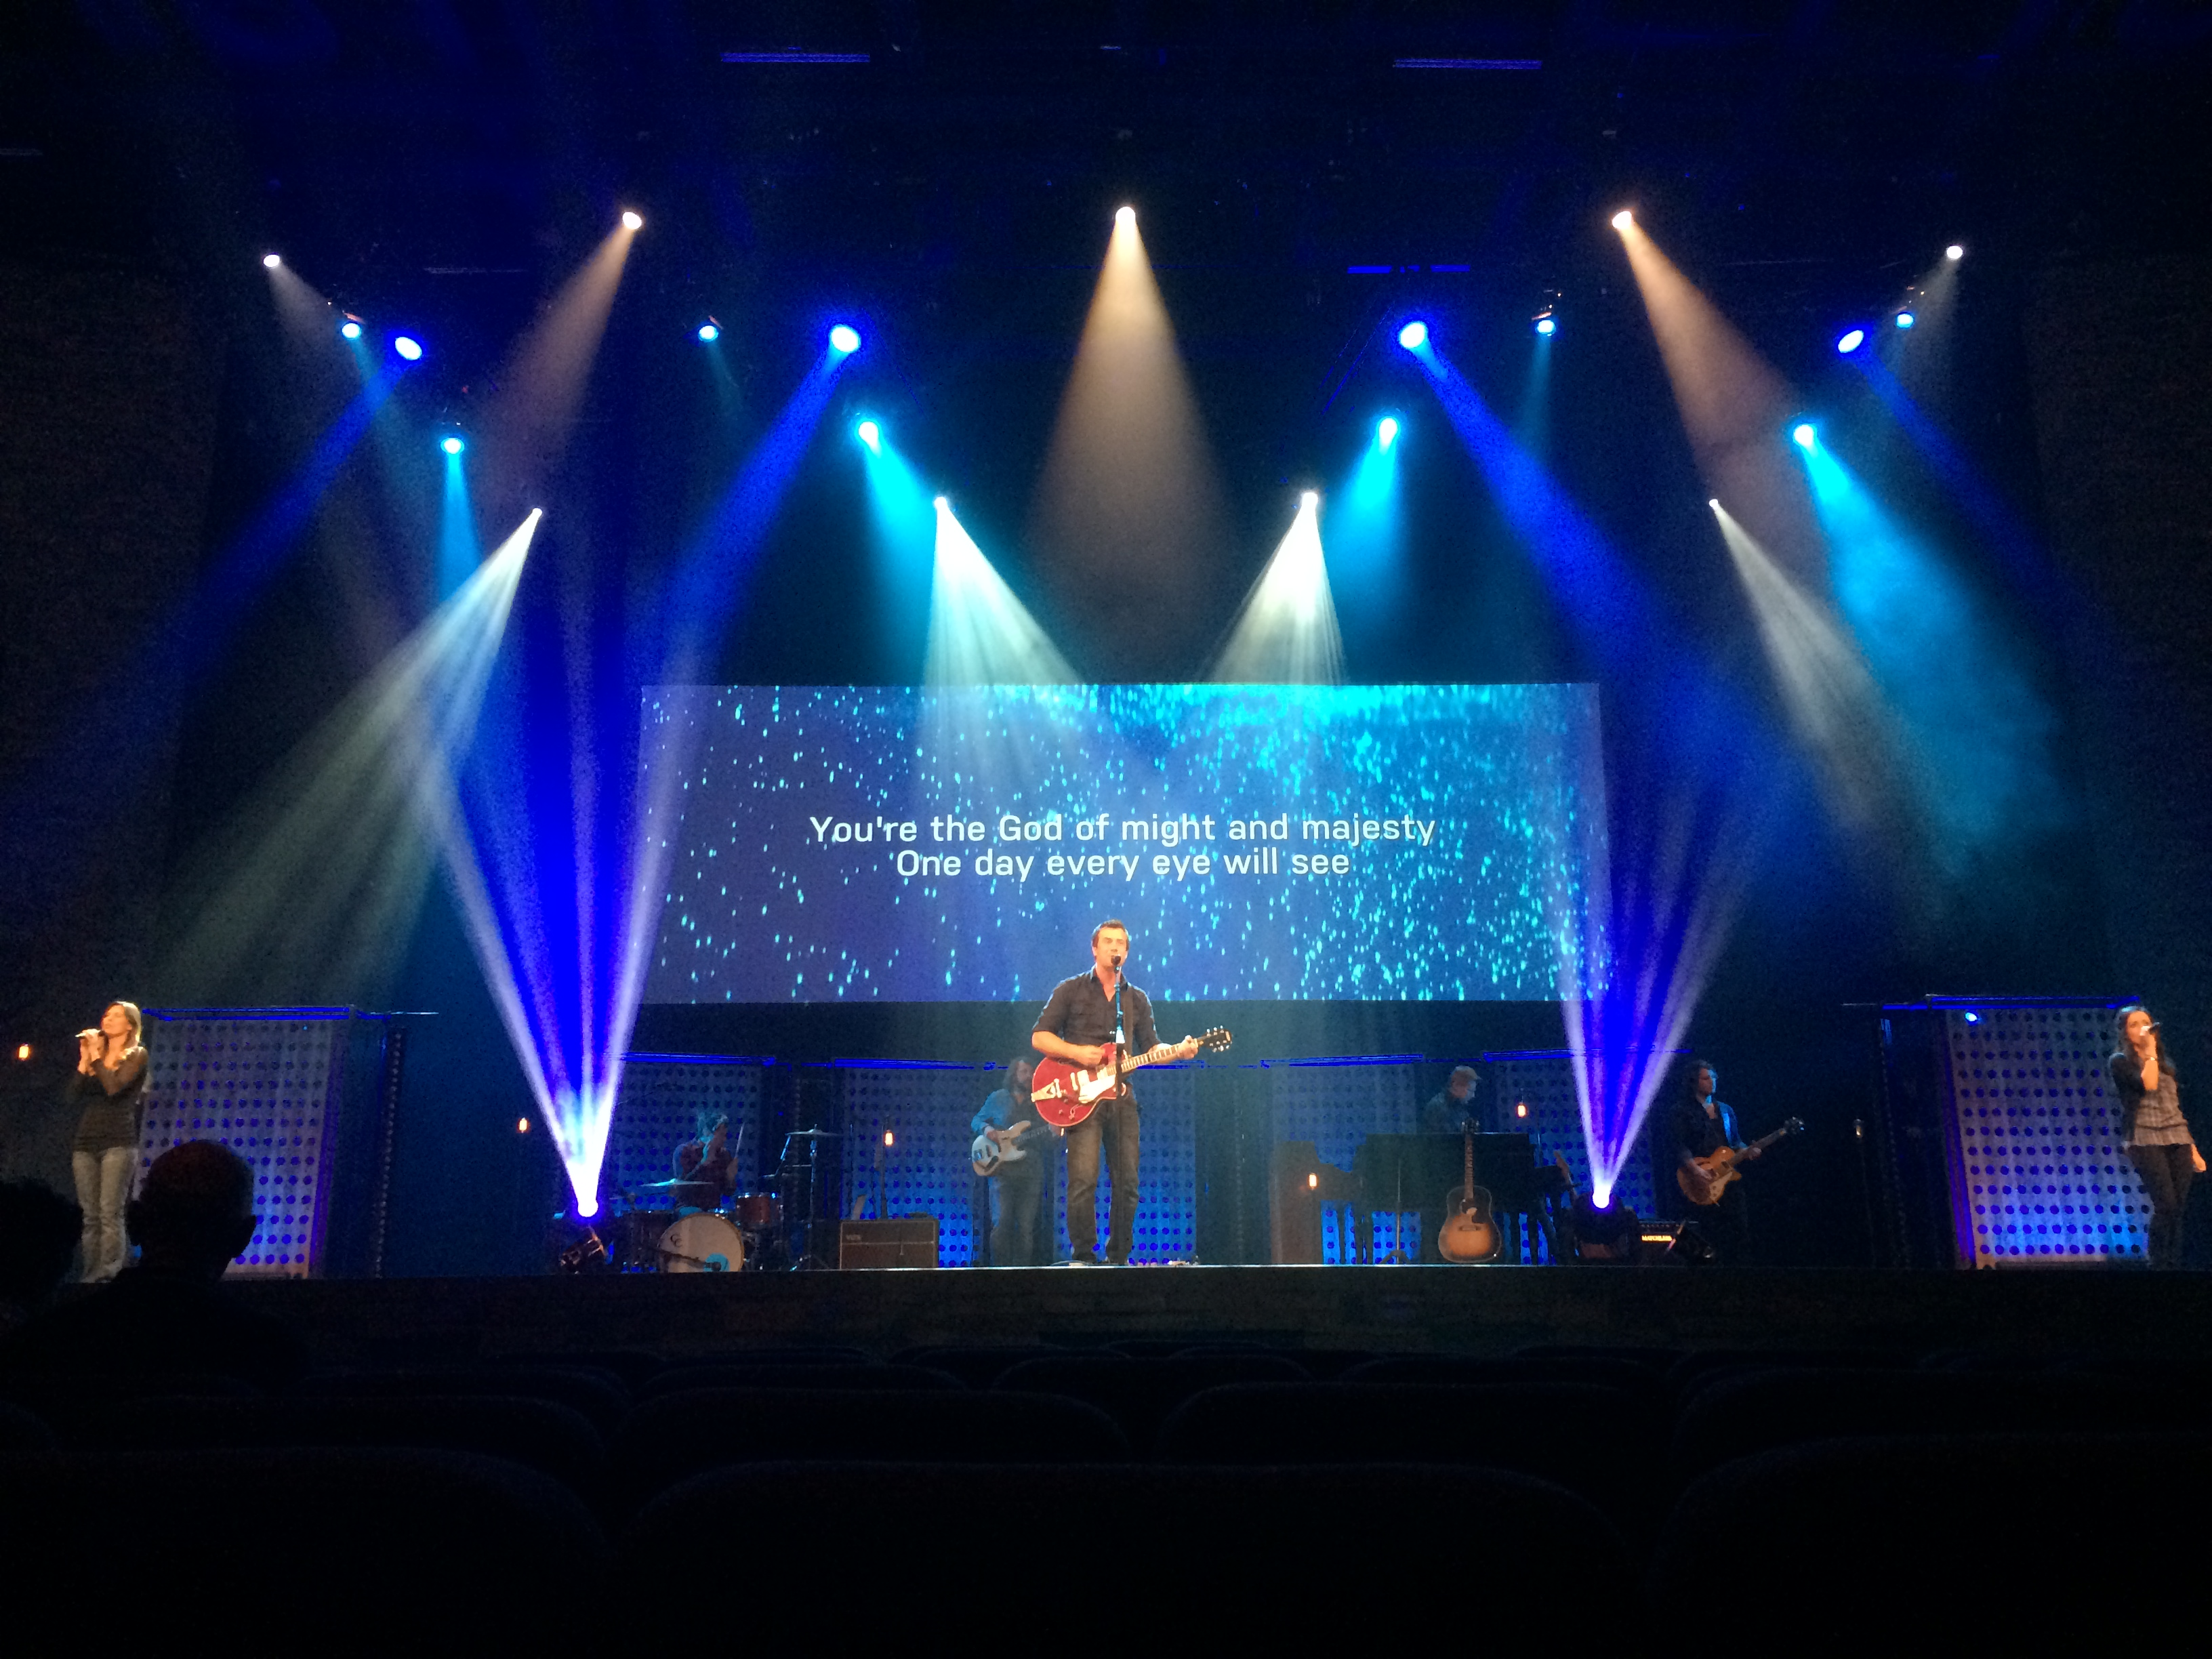 Holey Stage Backdrop Church Stage Design Ideas